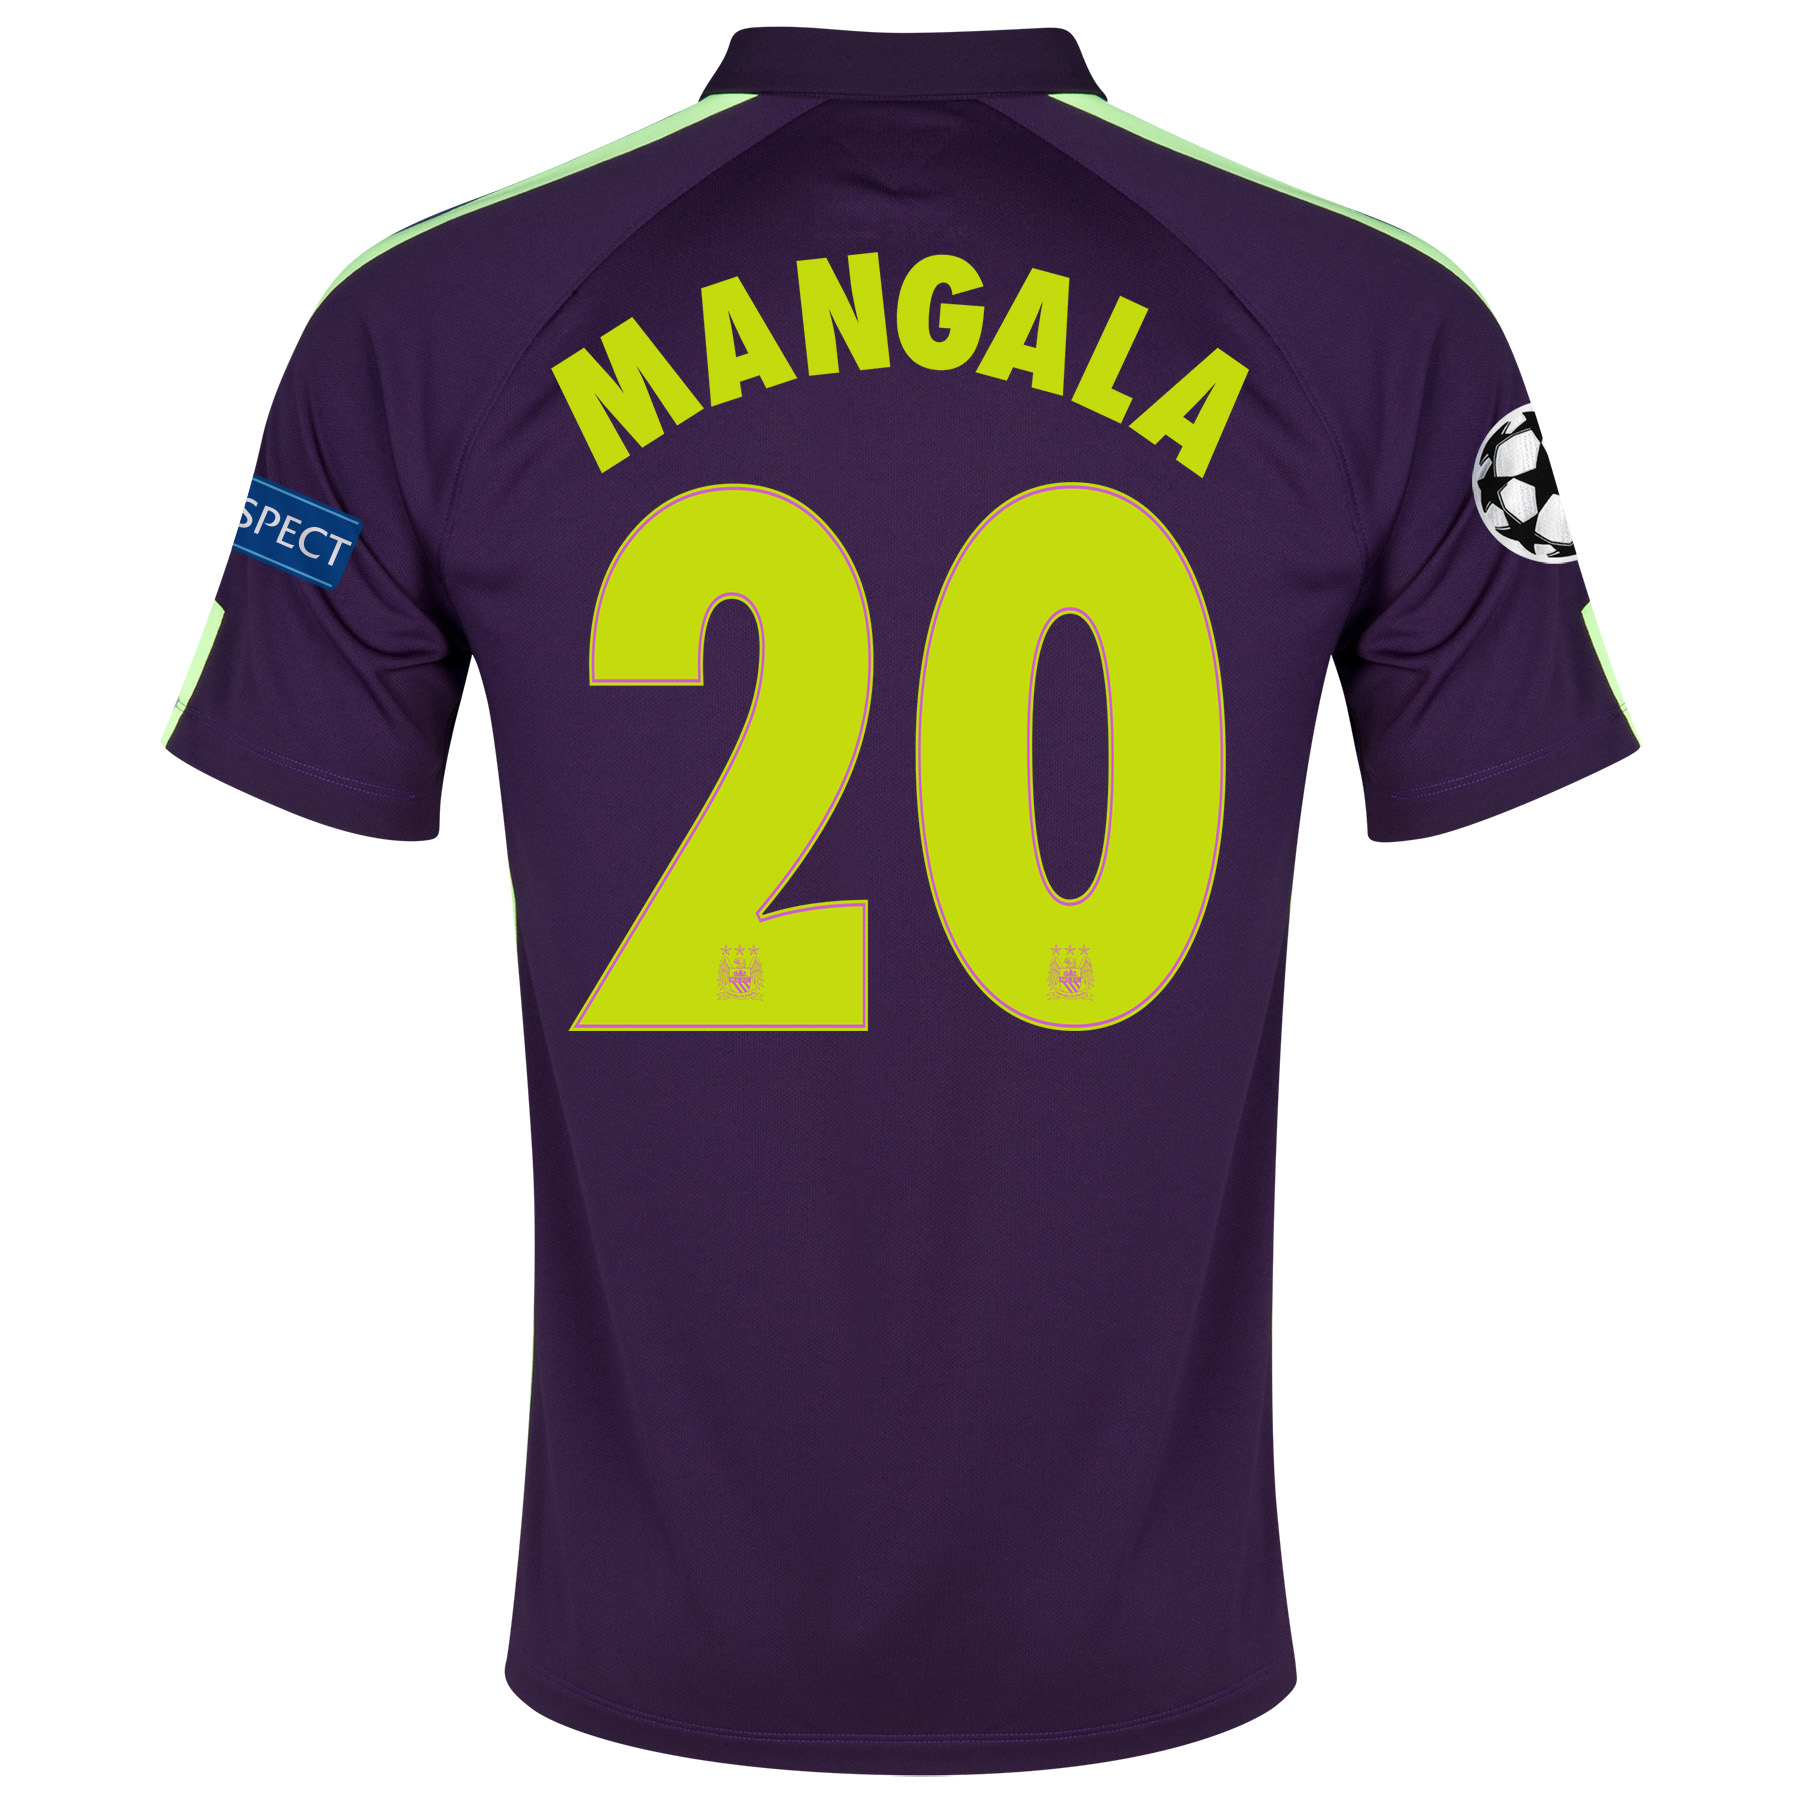 Manchester City UEFA Champions League Cup Away Shirt 2014/15 Purple with Mangala 20 printing